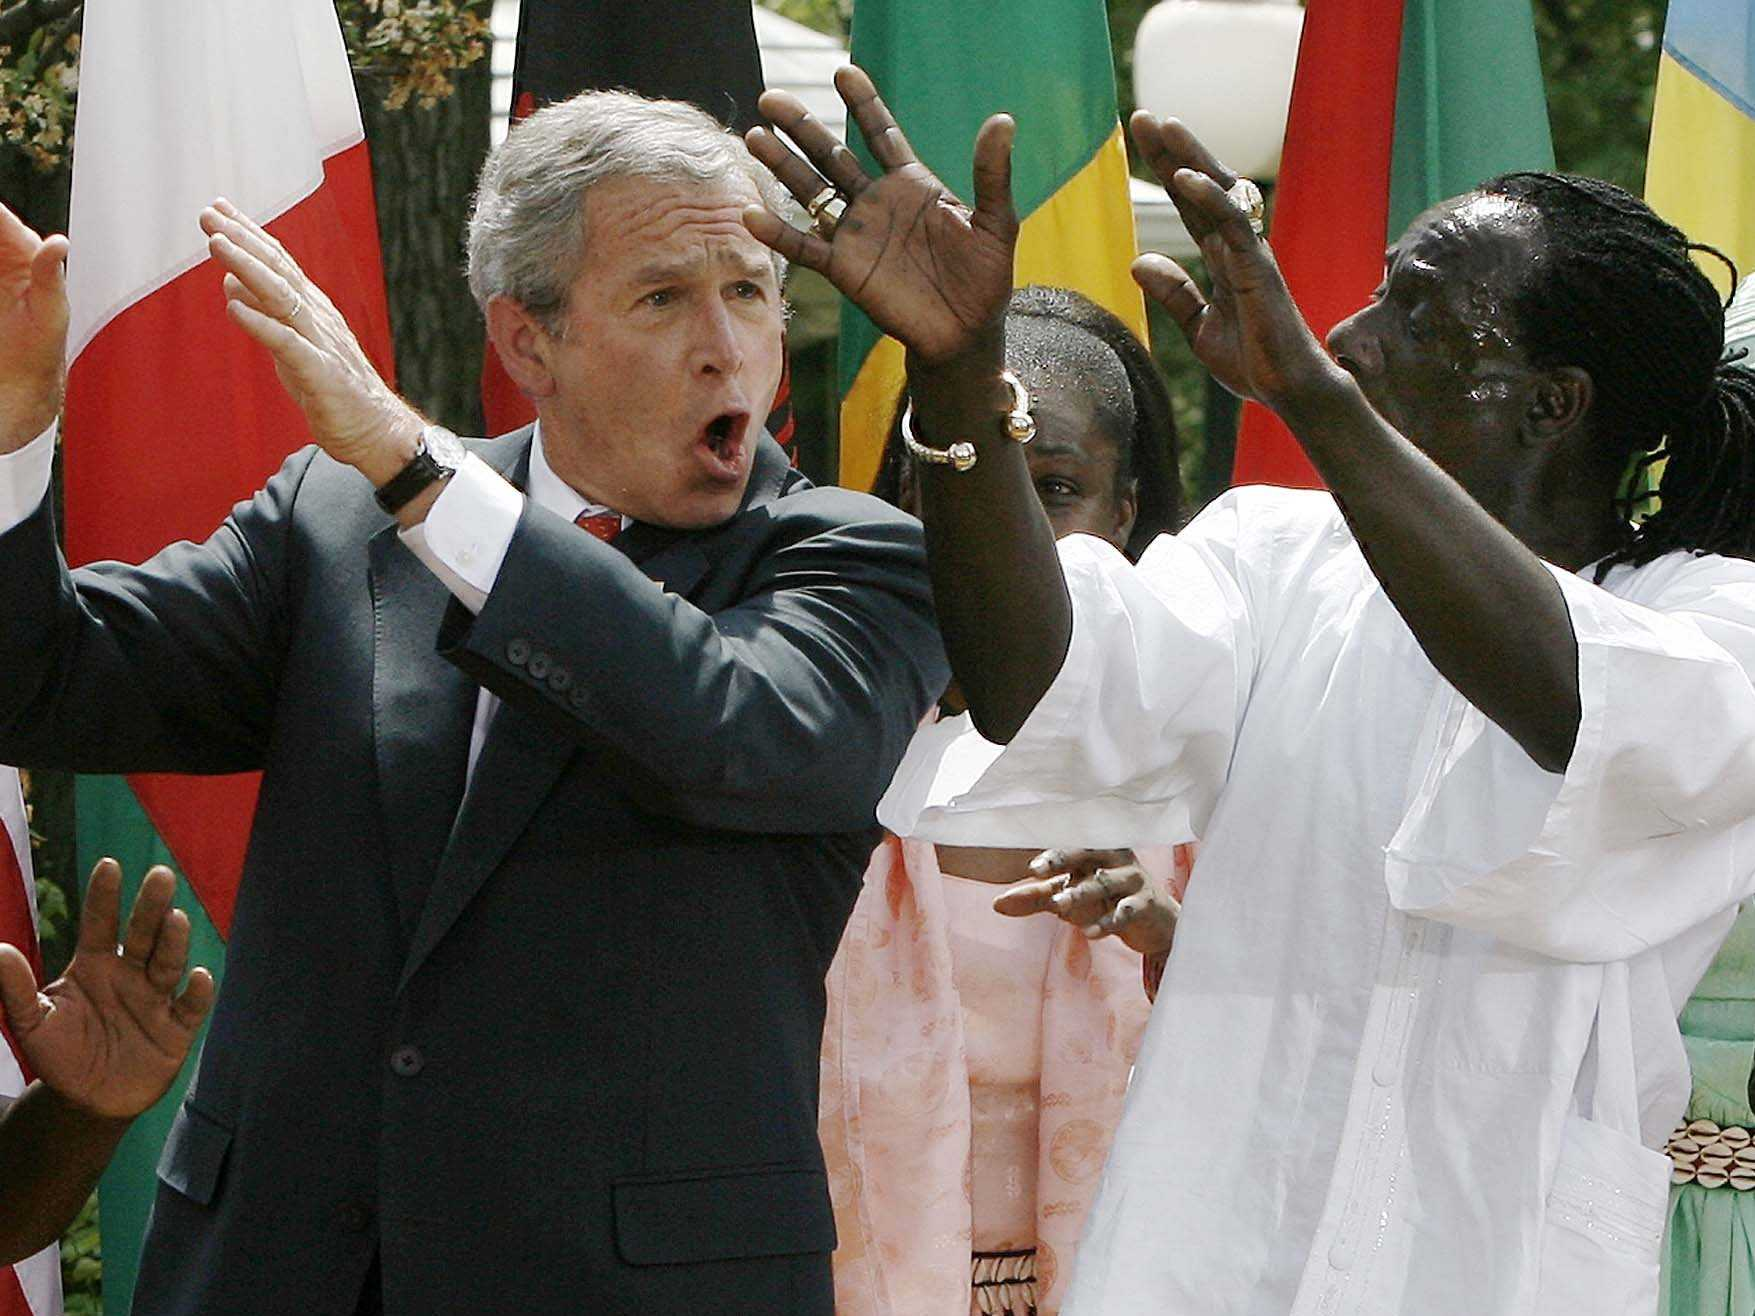 39-photos-that-show-why-everyone-misses-george-w-bush